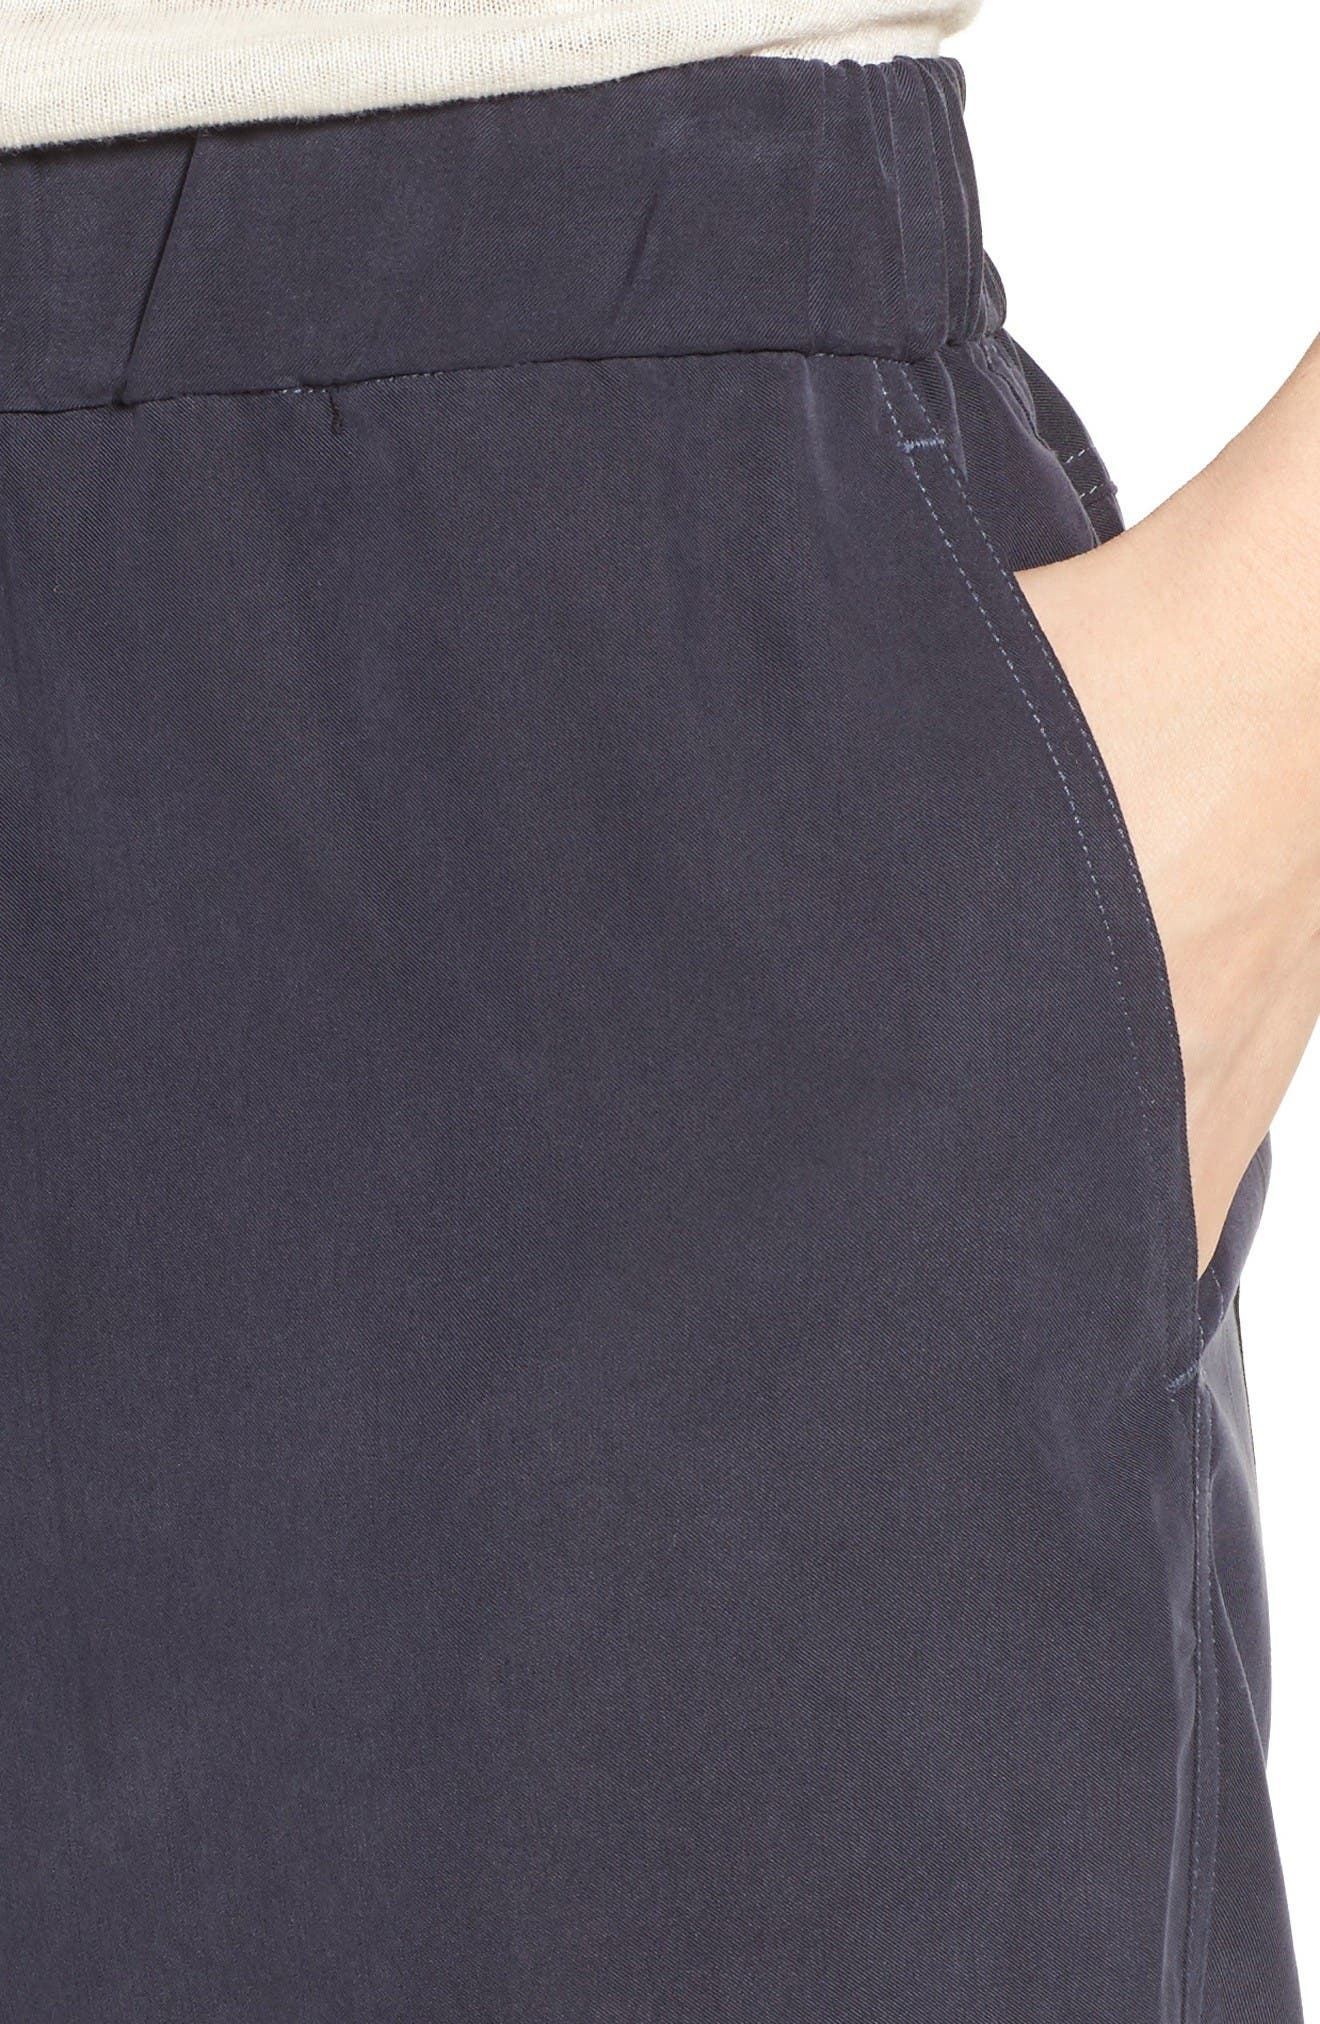 City Slicker Pants,                             Alternate thumbnail 4, color,                             Washed Midnight